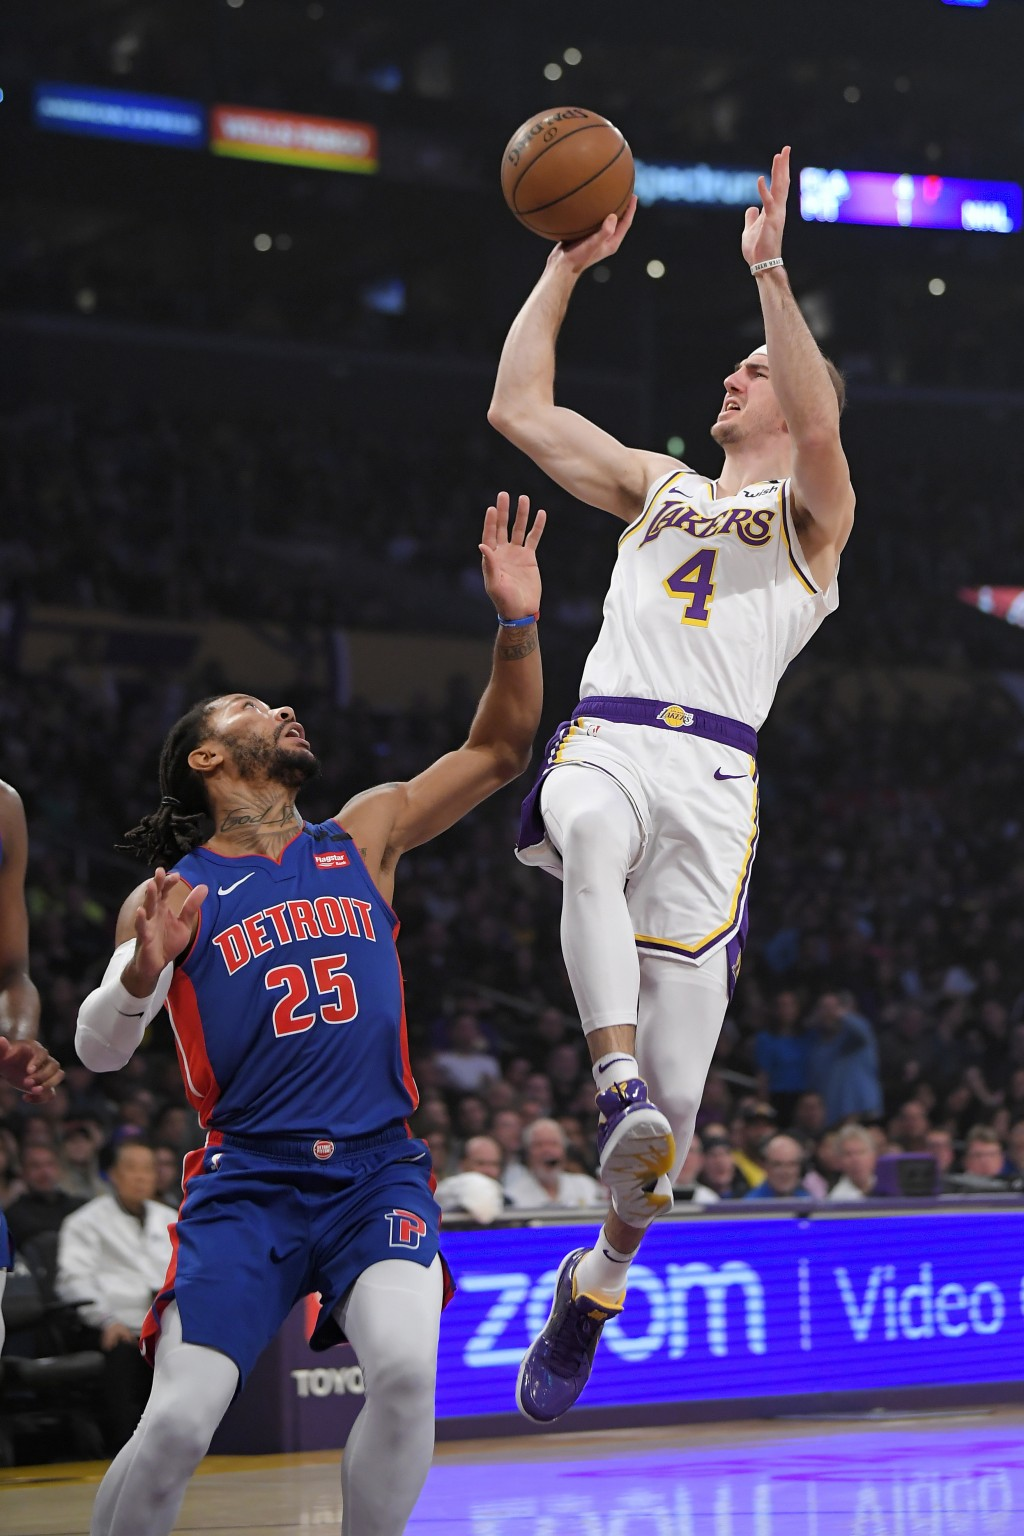 Los Angeles Lakers guard Alex Caruso, right, shoots as Detroit Pistons guard Derrick Rose defends during the first half of an NBA basketball game Sund...